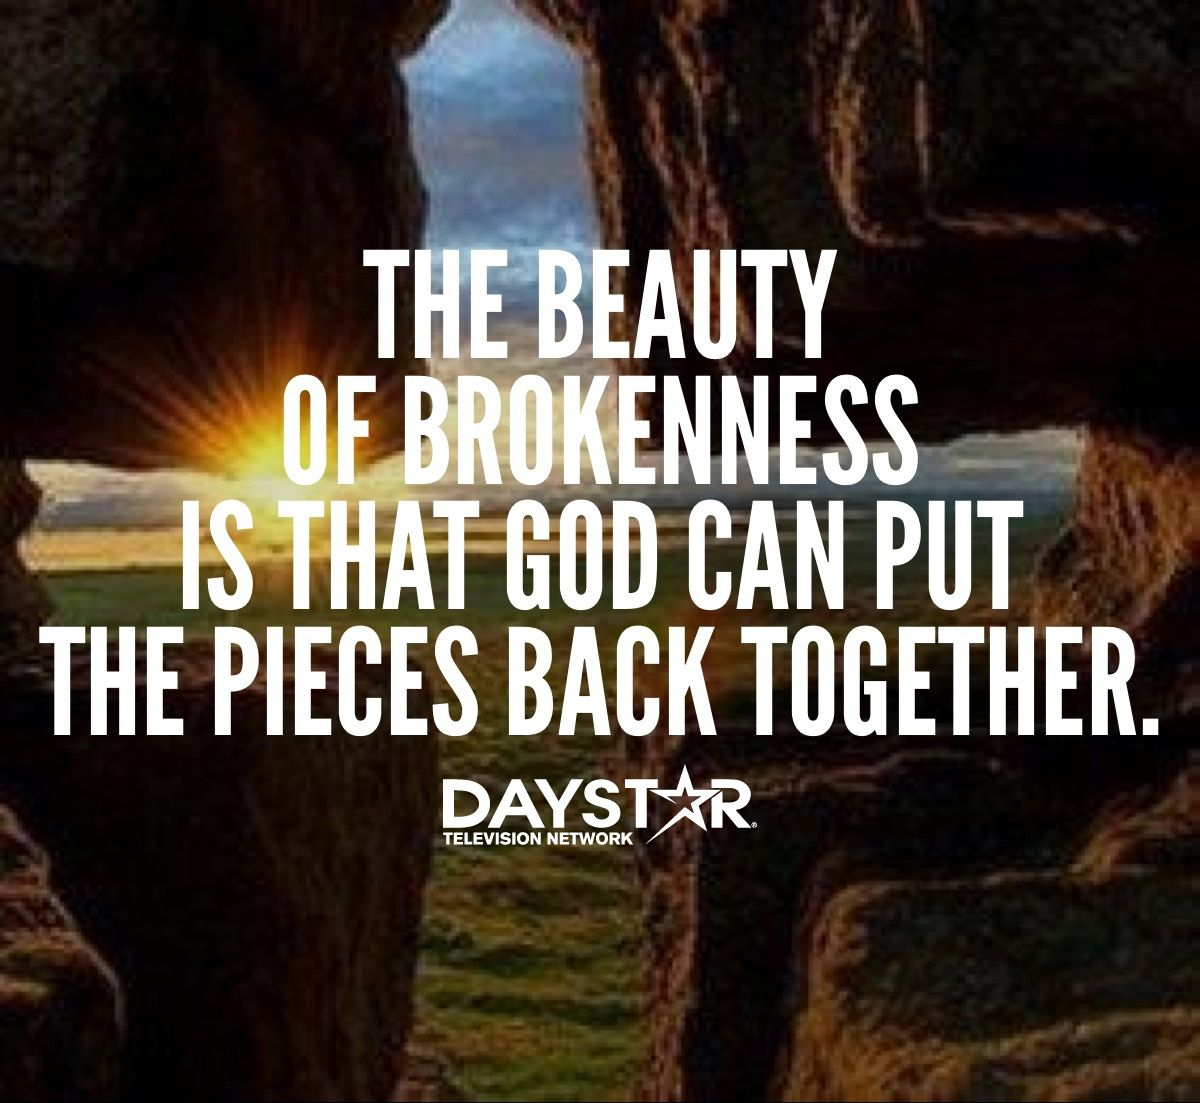 Christian Brokenness Quotes Quotesgram: The Beauty Of Brokenness Is That God Can Put The Pieces